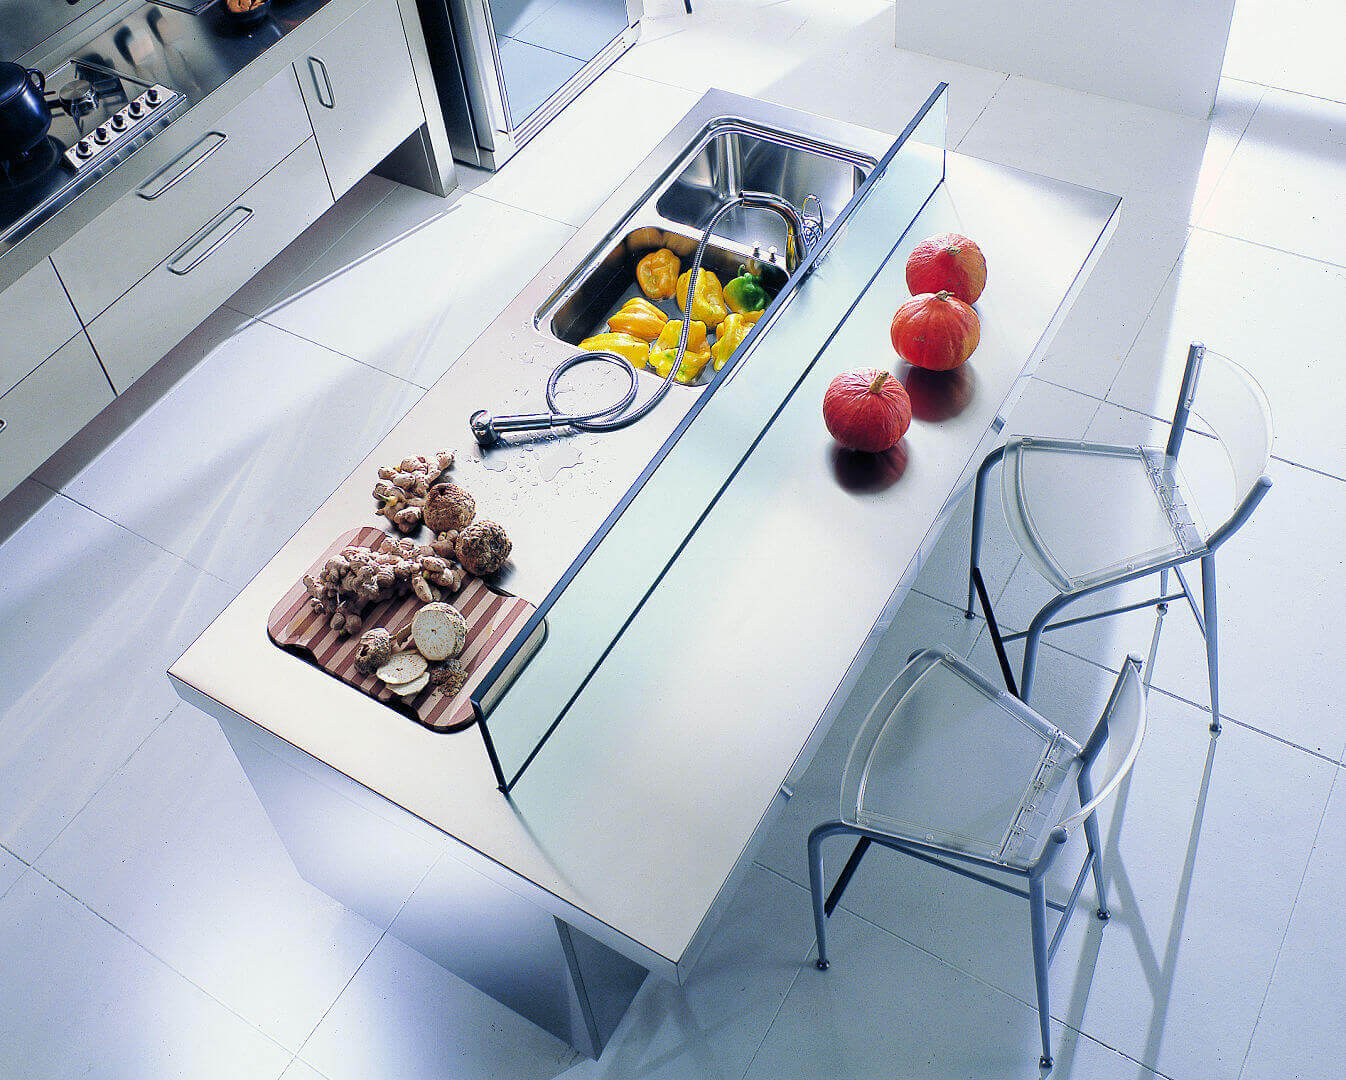 Arca Cucine Italy - Home Kitchen Stainless Steel - Spring - Isola Snack